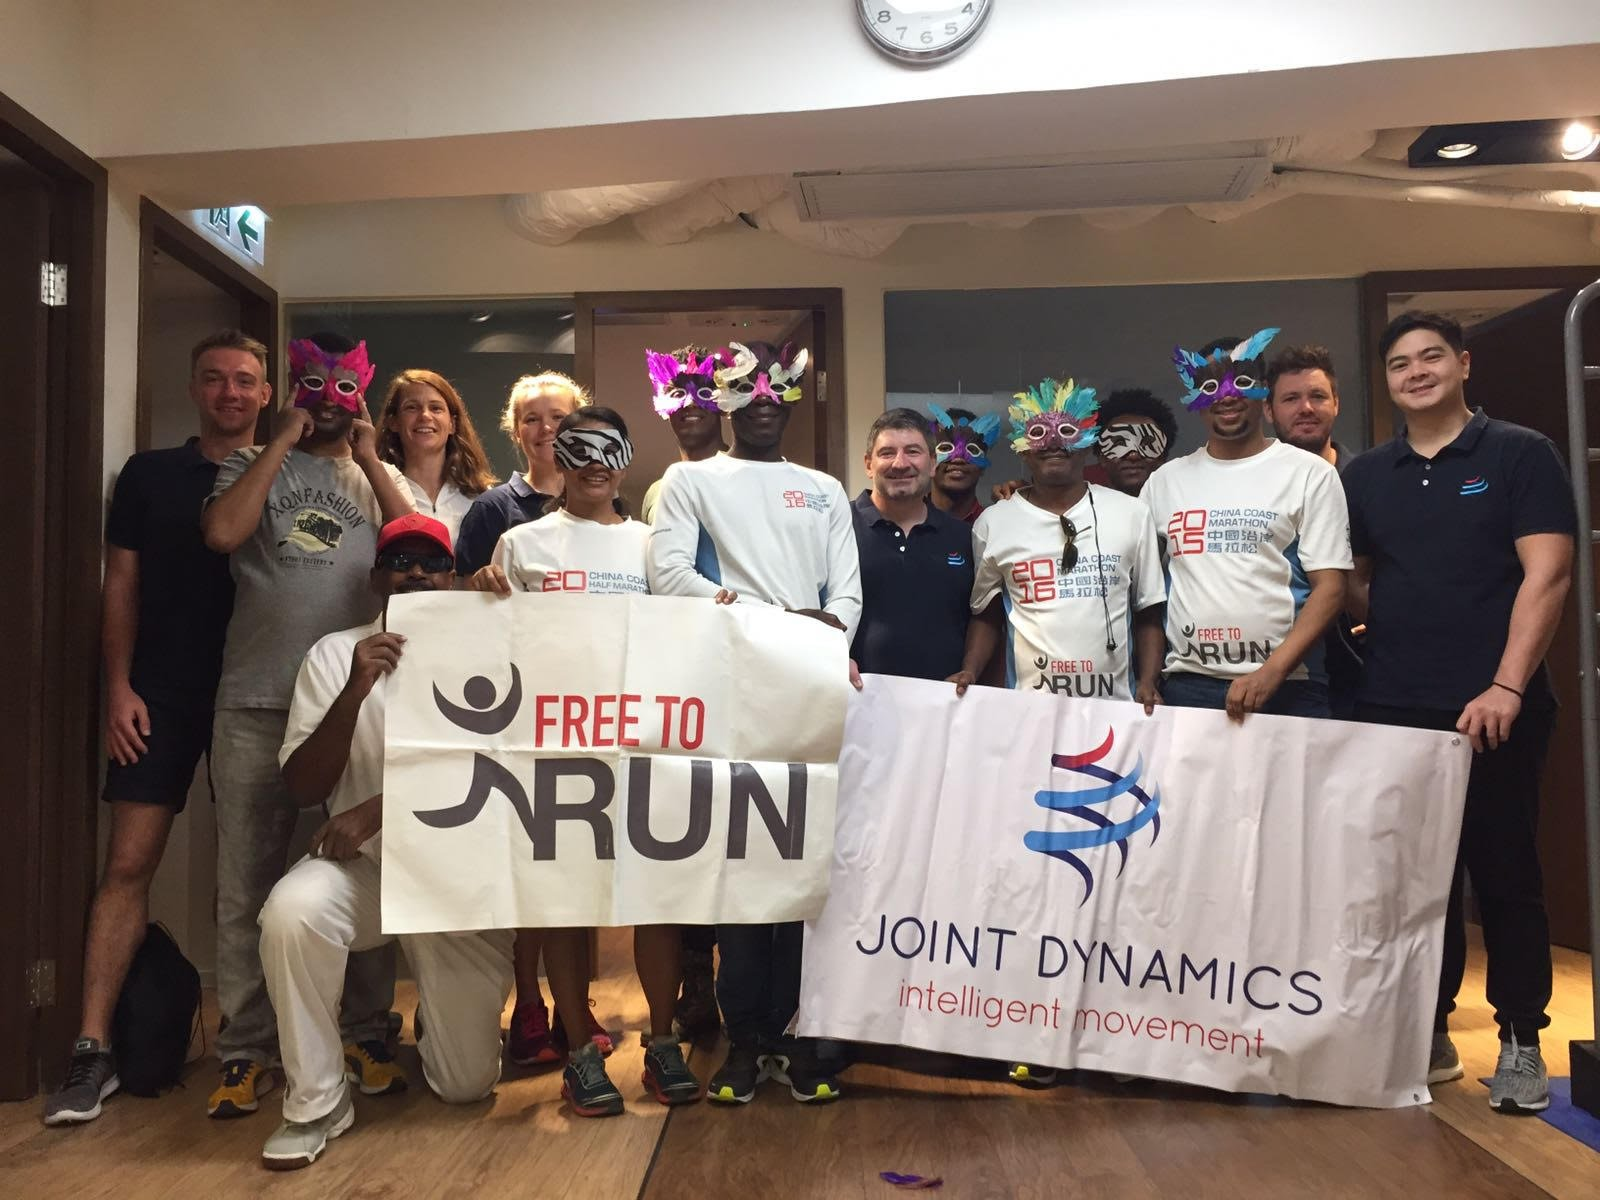 The team at Joint Dynamics kindly donated physiotherapy treatments to several Free to Run program participants.